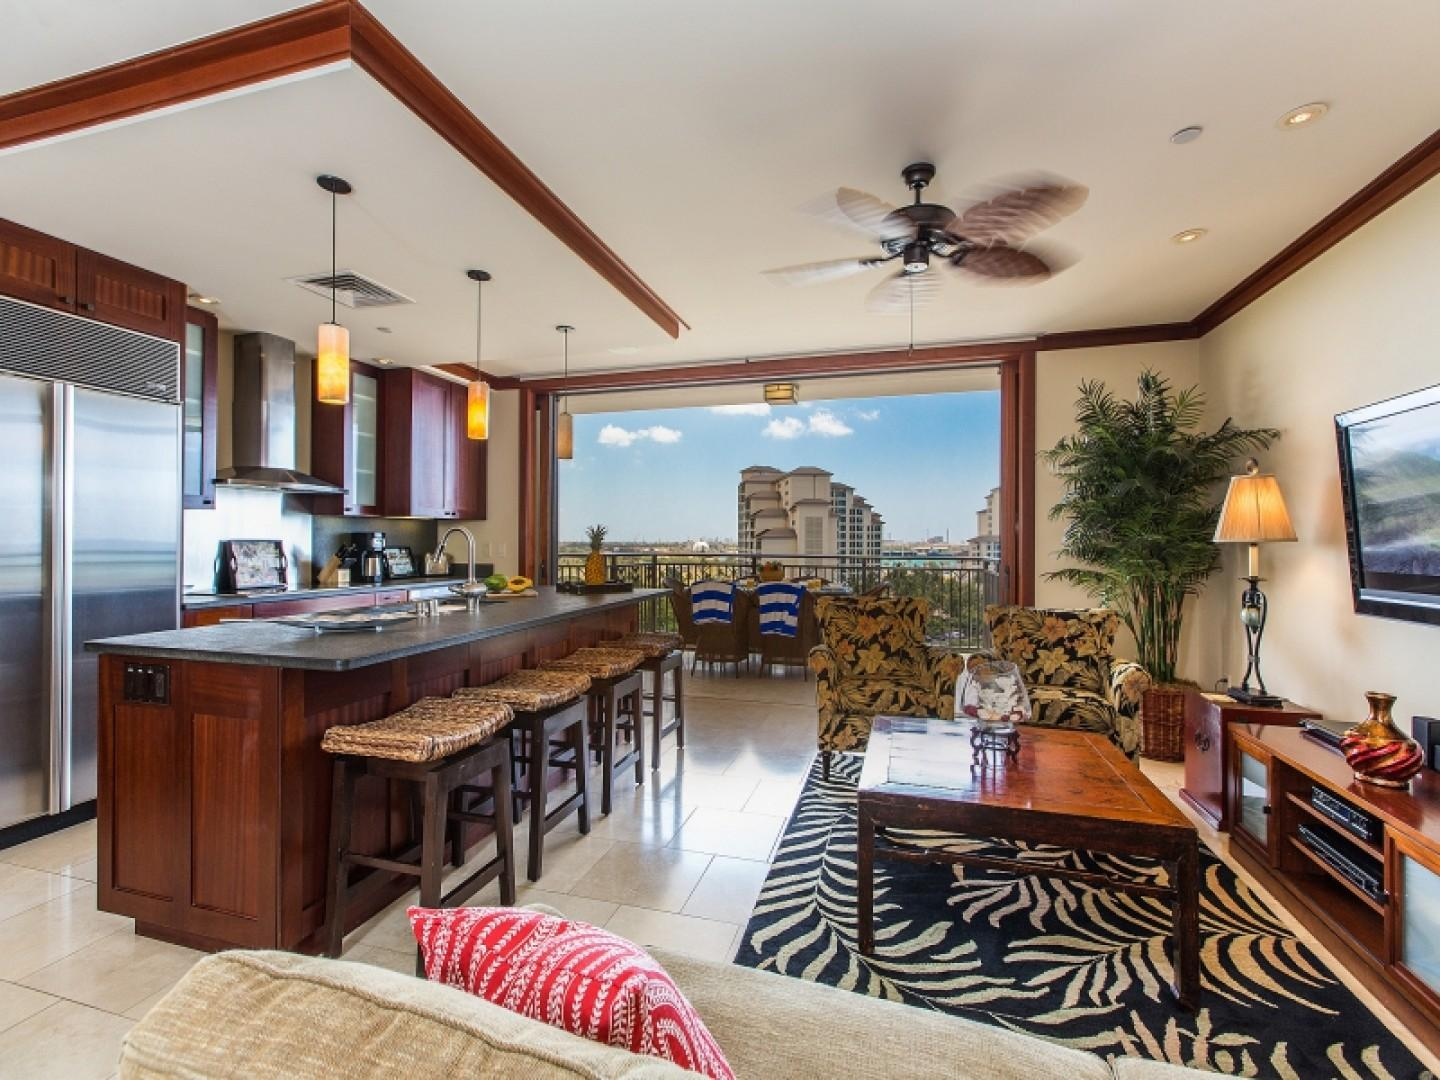 Living kitchen area view